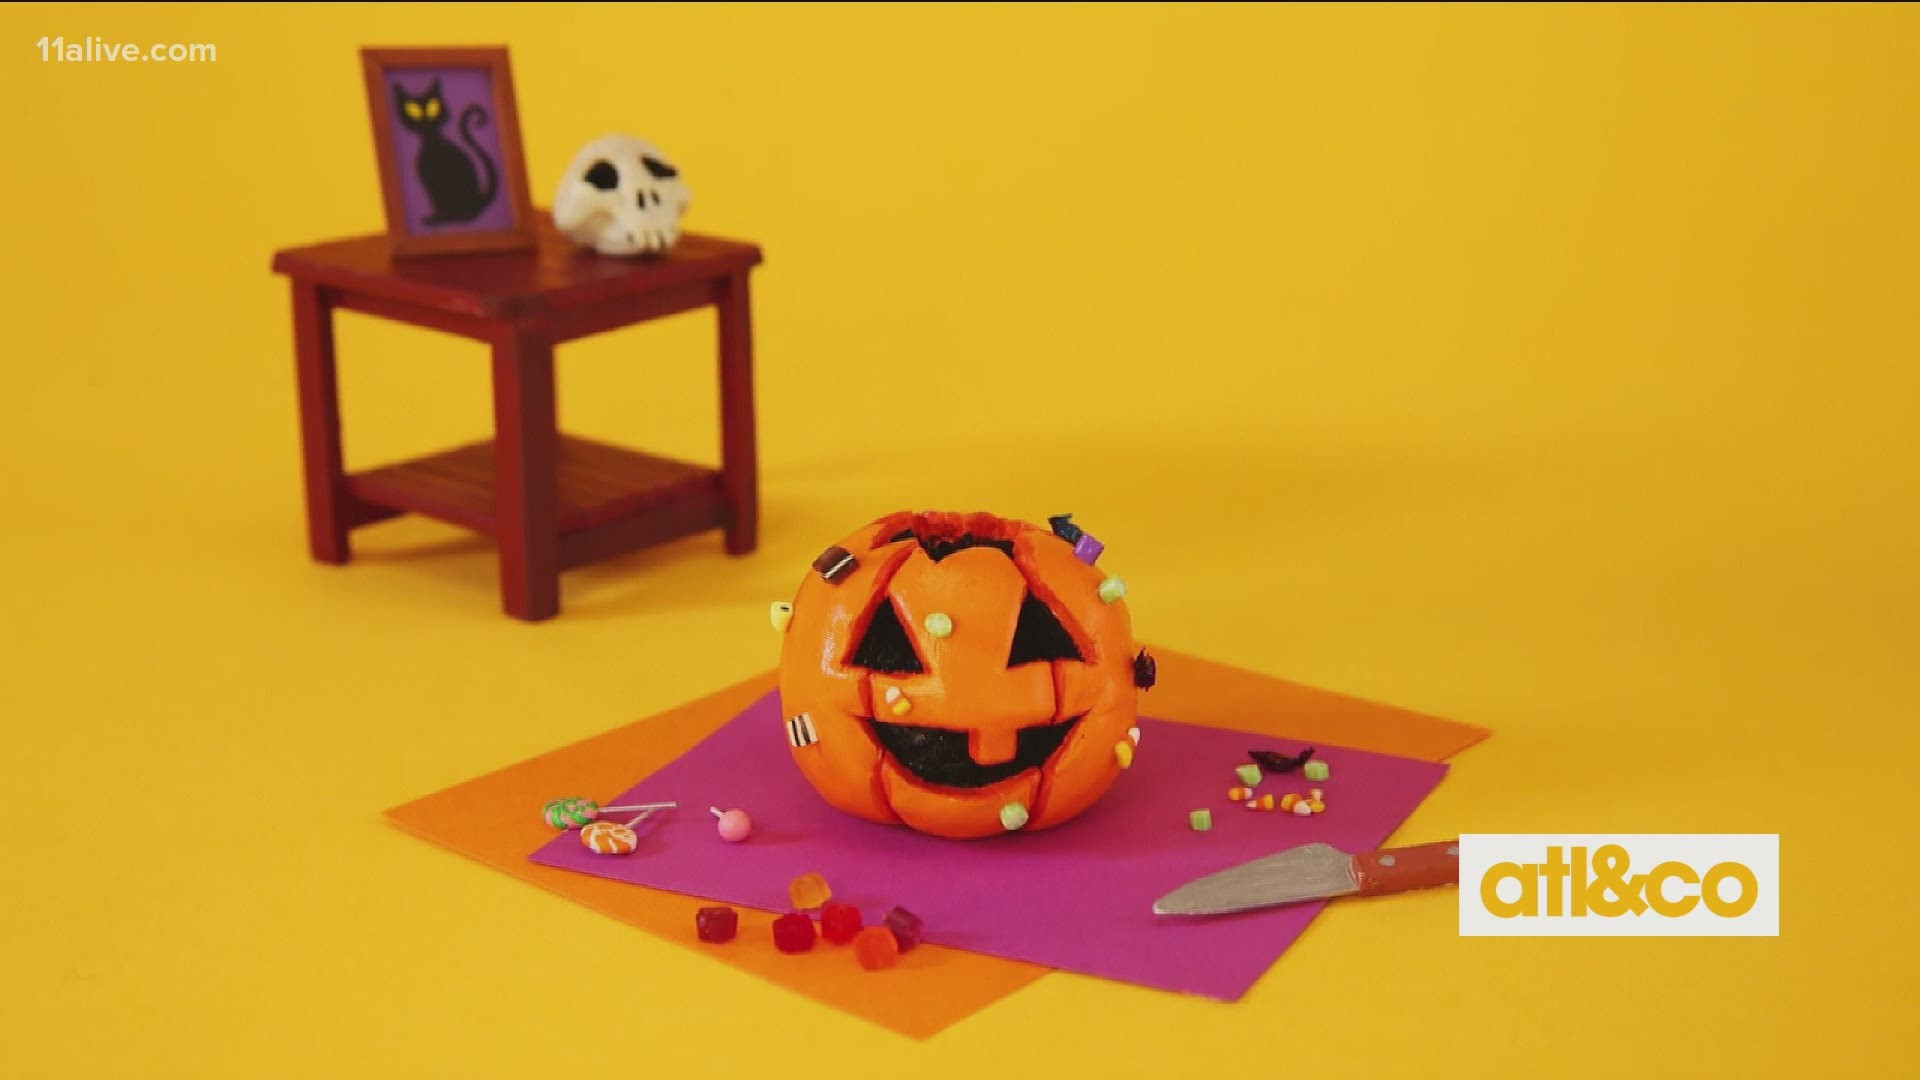 Atlanta Weather Halloween 2020 Halloween 2020 with National Confectioners Association | 11alive.com